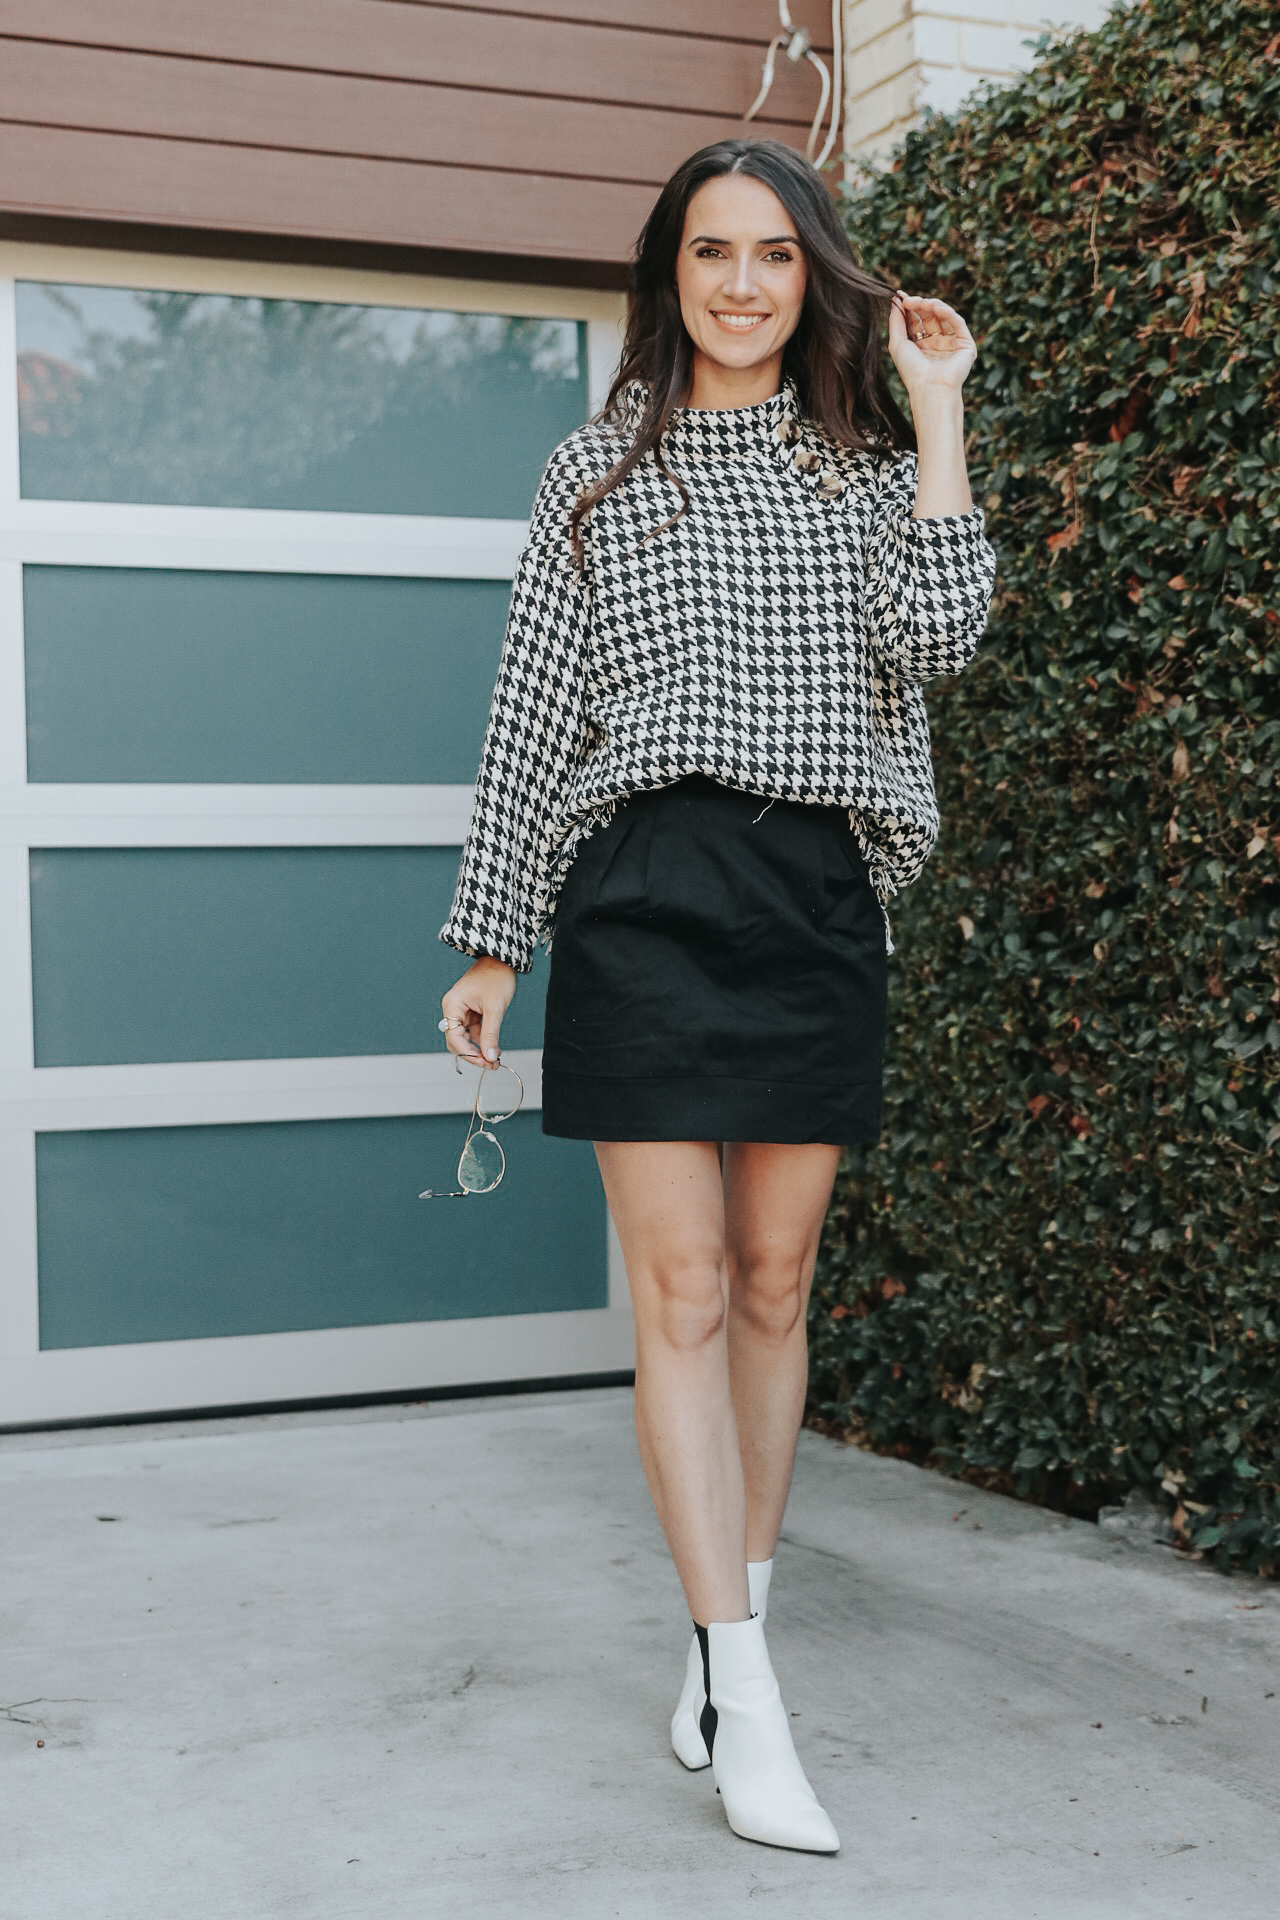 4 Sweater Weather Ideas - Zara Houndstooth Tweed Poncho Sweater - thecasualfree.com